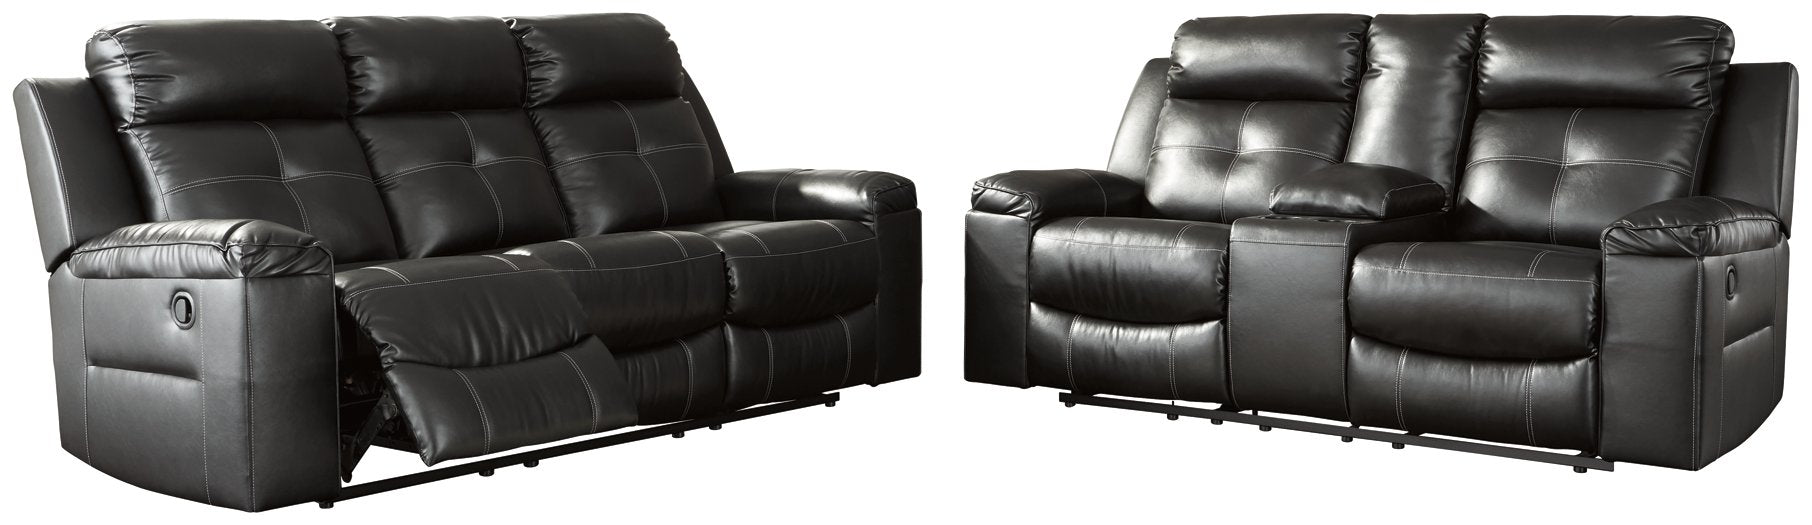 Kempten Signature Design 2-Piece Living Room Set